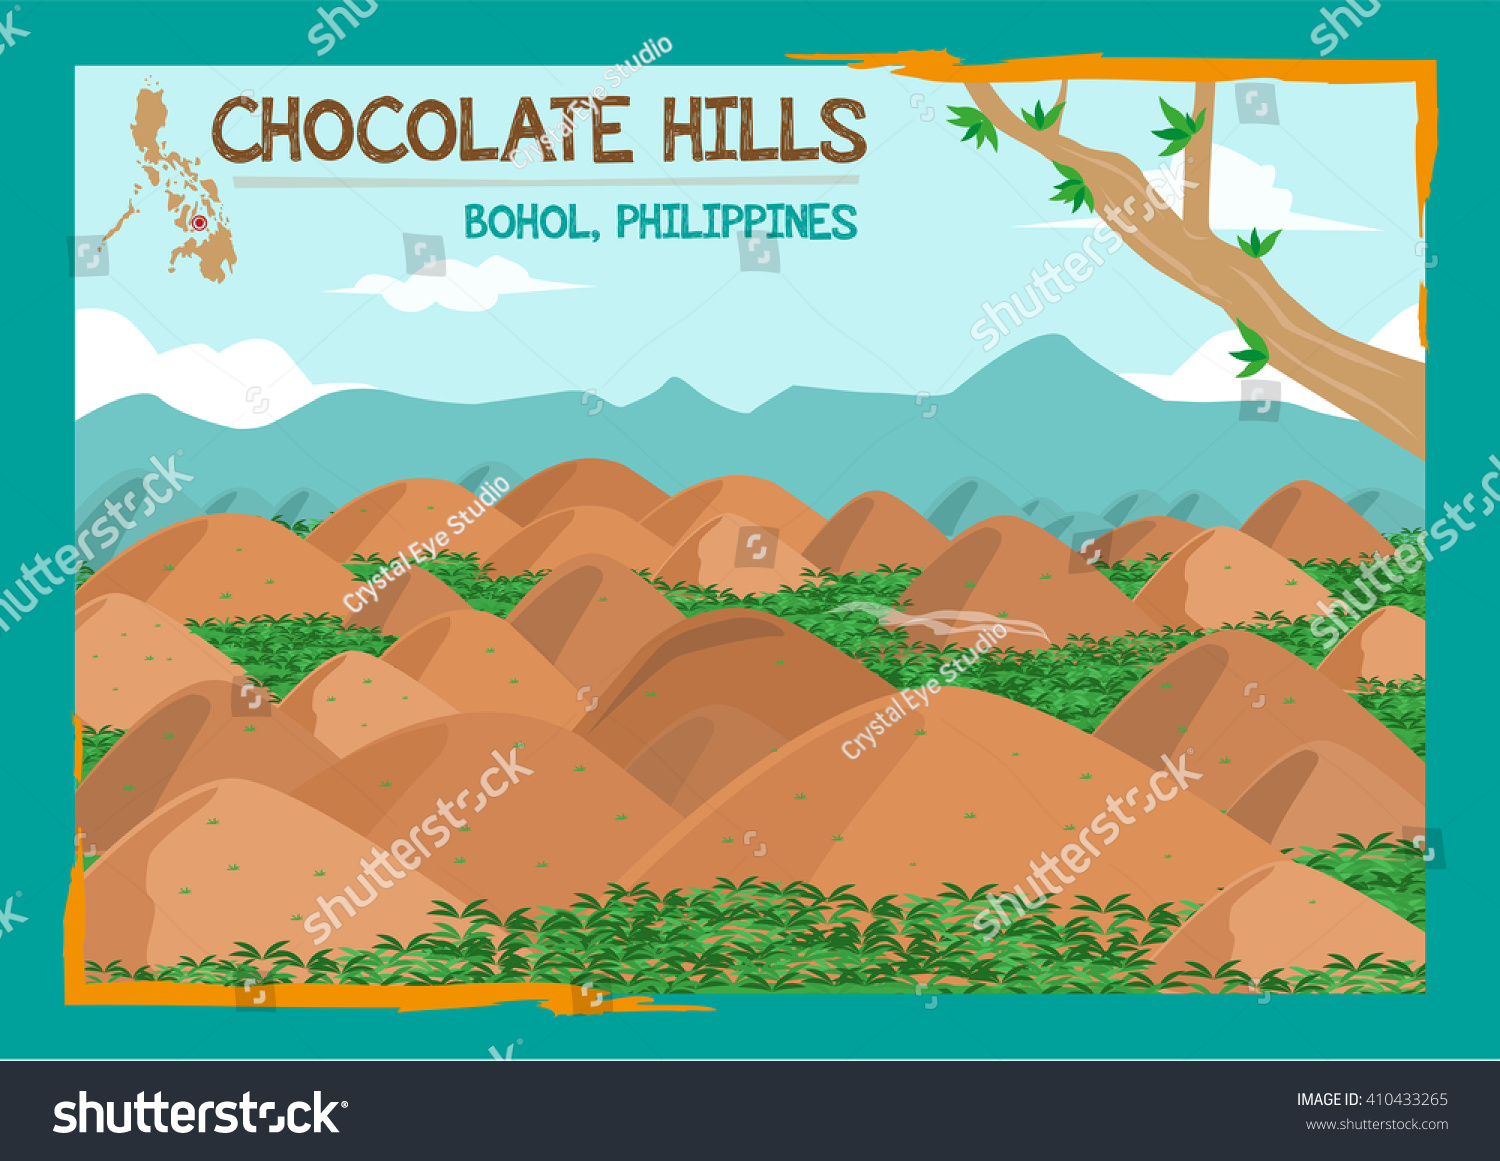 chocolate hills formation located bohol philippines stock Mountain Clip Art Hiking Clip Art